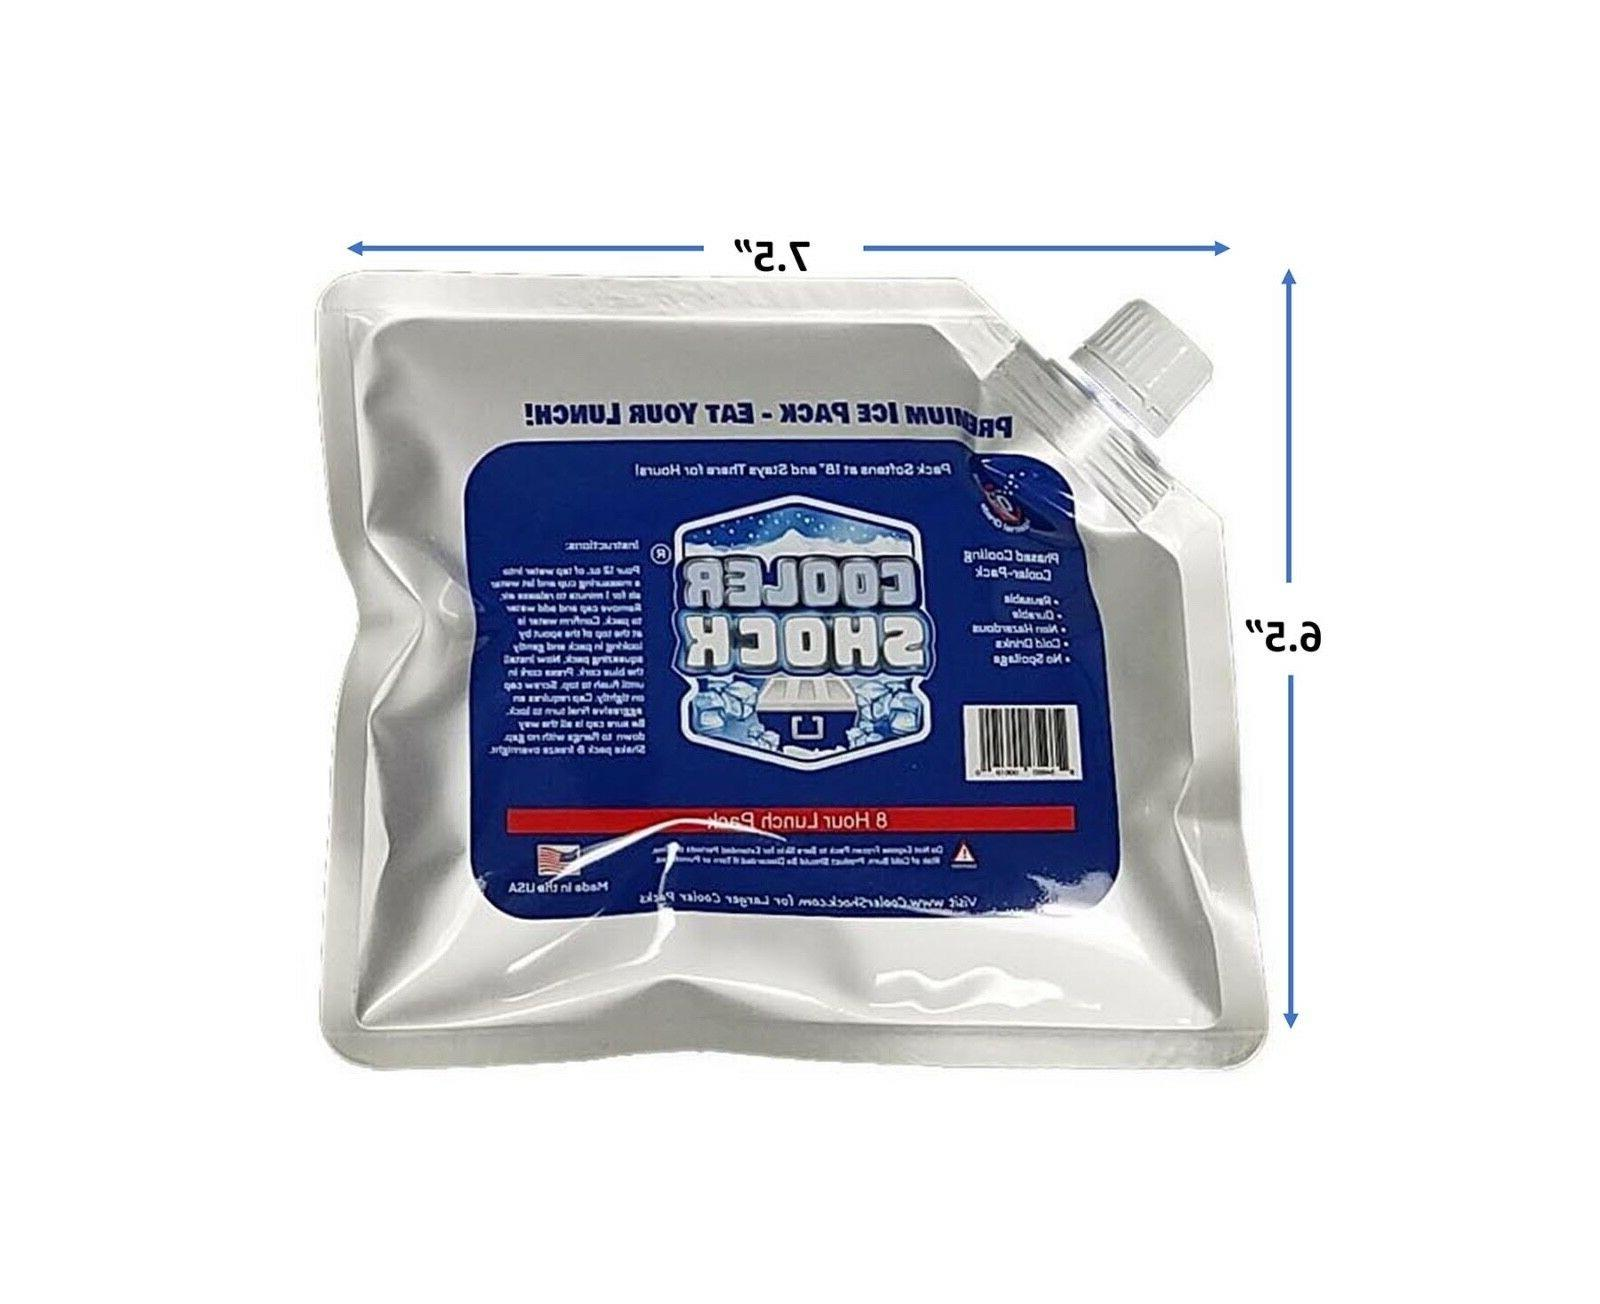 5 Pack of Cooler Shock Size Ice Packs Buy direct from Manufacturer!